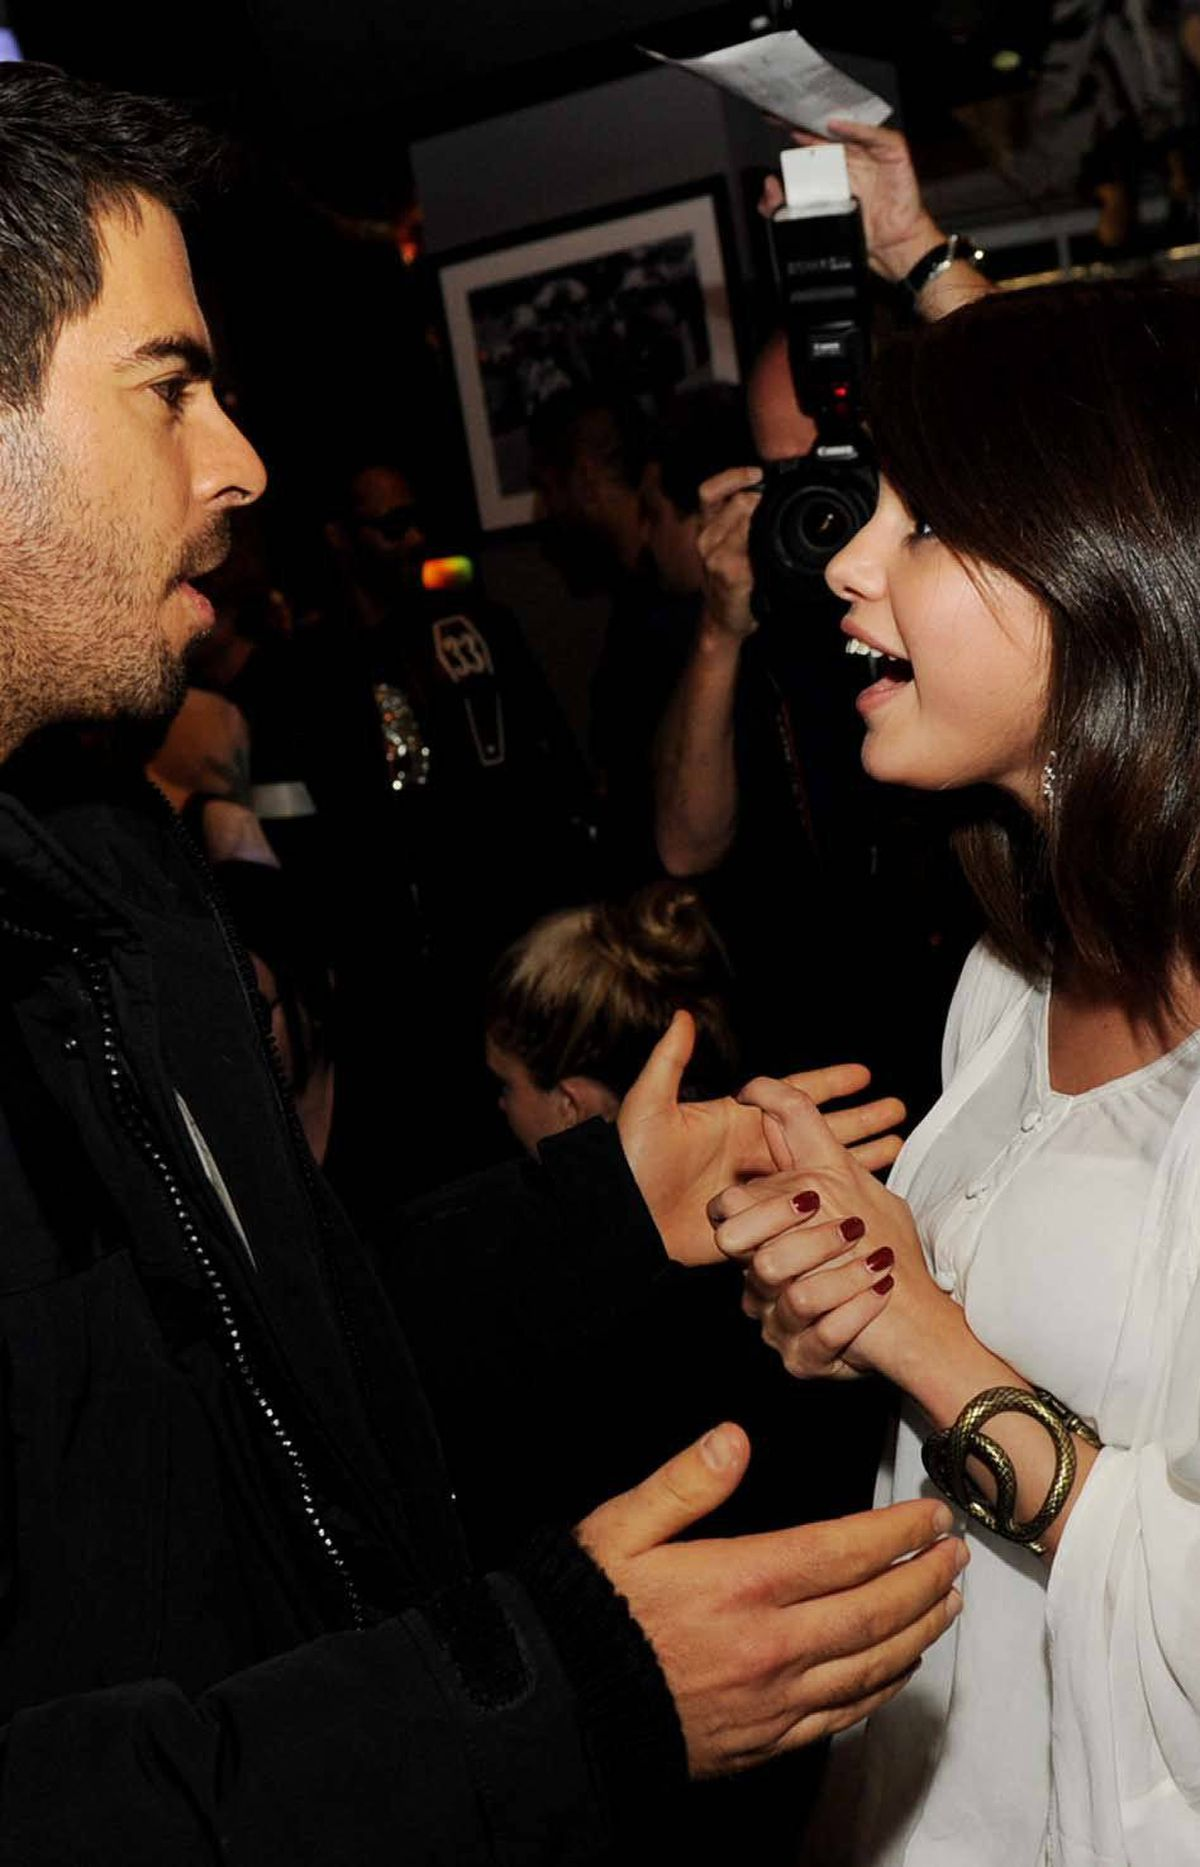 """Selena Gomez, attending the premiere of """"The Thing,"""" is delighted by Eli Roth's discourse on how power belongs to those who control the means of production You'd be good at feigning interest, too, if you were dating Justin Bieber."""